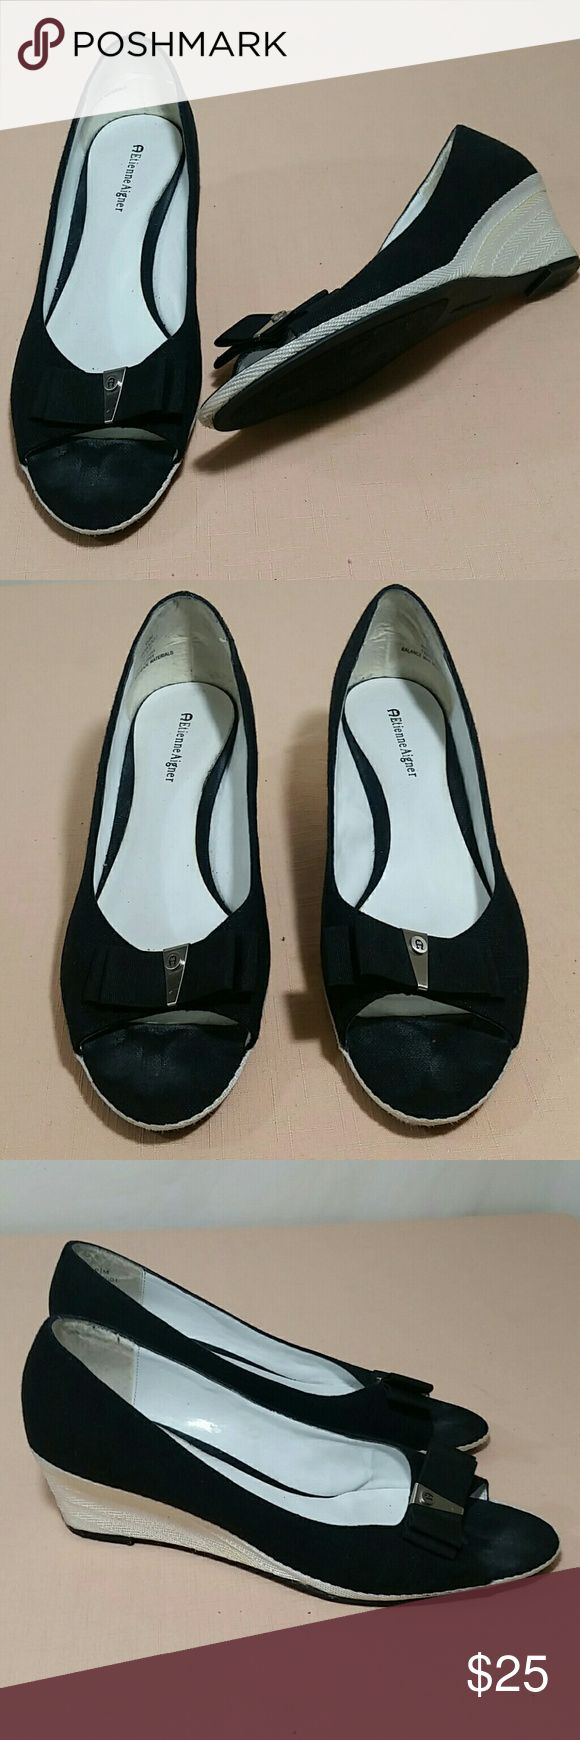 """ETIENNE AIGNER Peep Toe Wedges Size 9 1/2 Beautiful ETIENNE AIGNER black peep toe Wedges.   This pair of Wedges has a 2 1/4"""" heel.  This pair of shoes are a size 9 1/2.  This pair of ETIENNE AIGNER Wedges are in excellent condition. Etienne Aigner Shoes Wedges"""